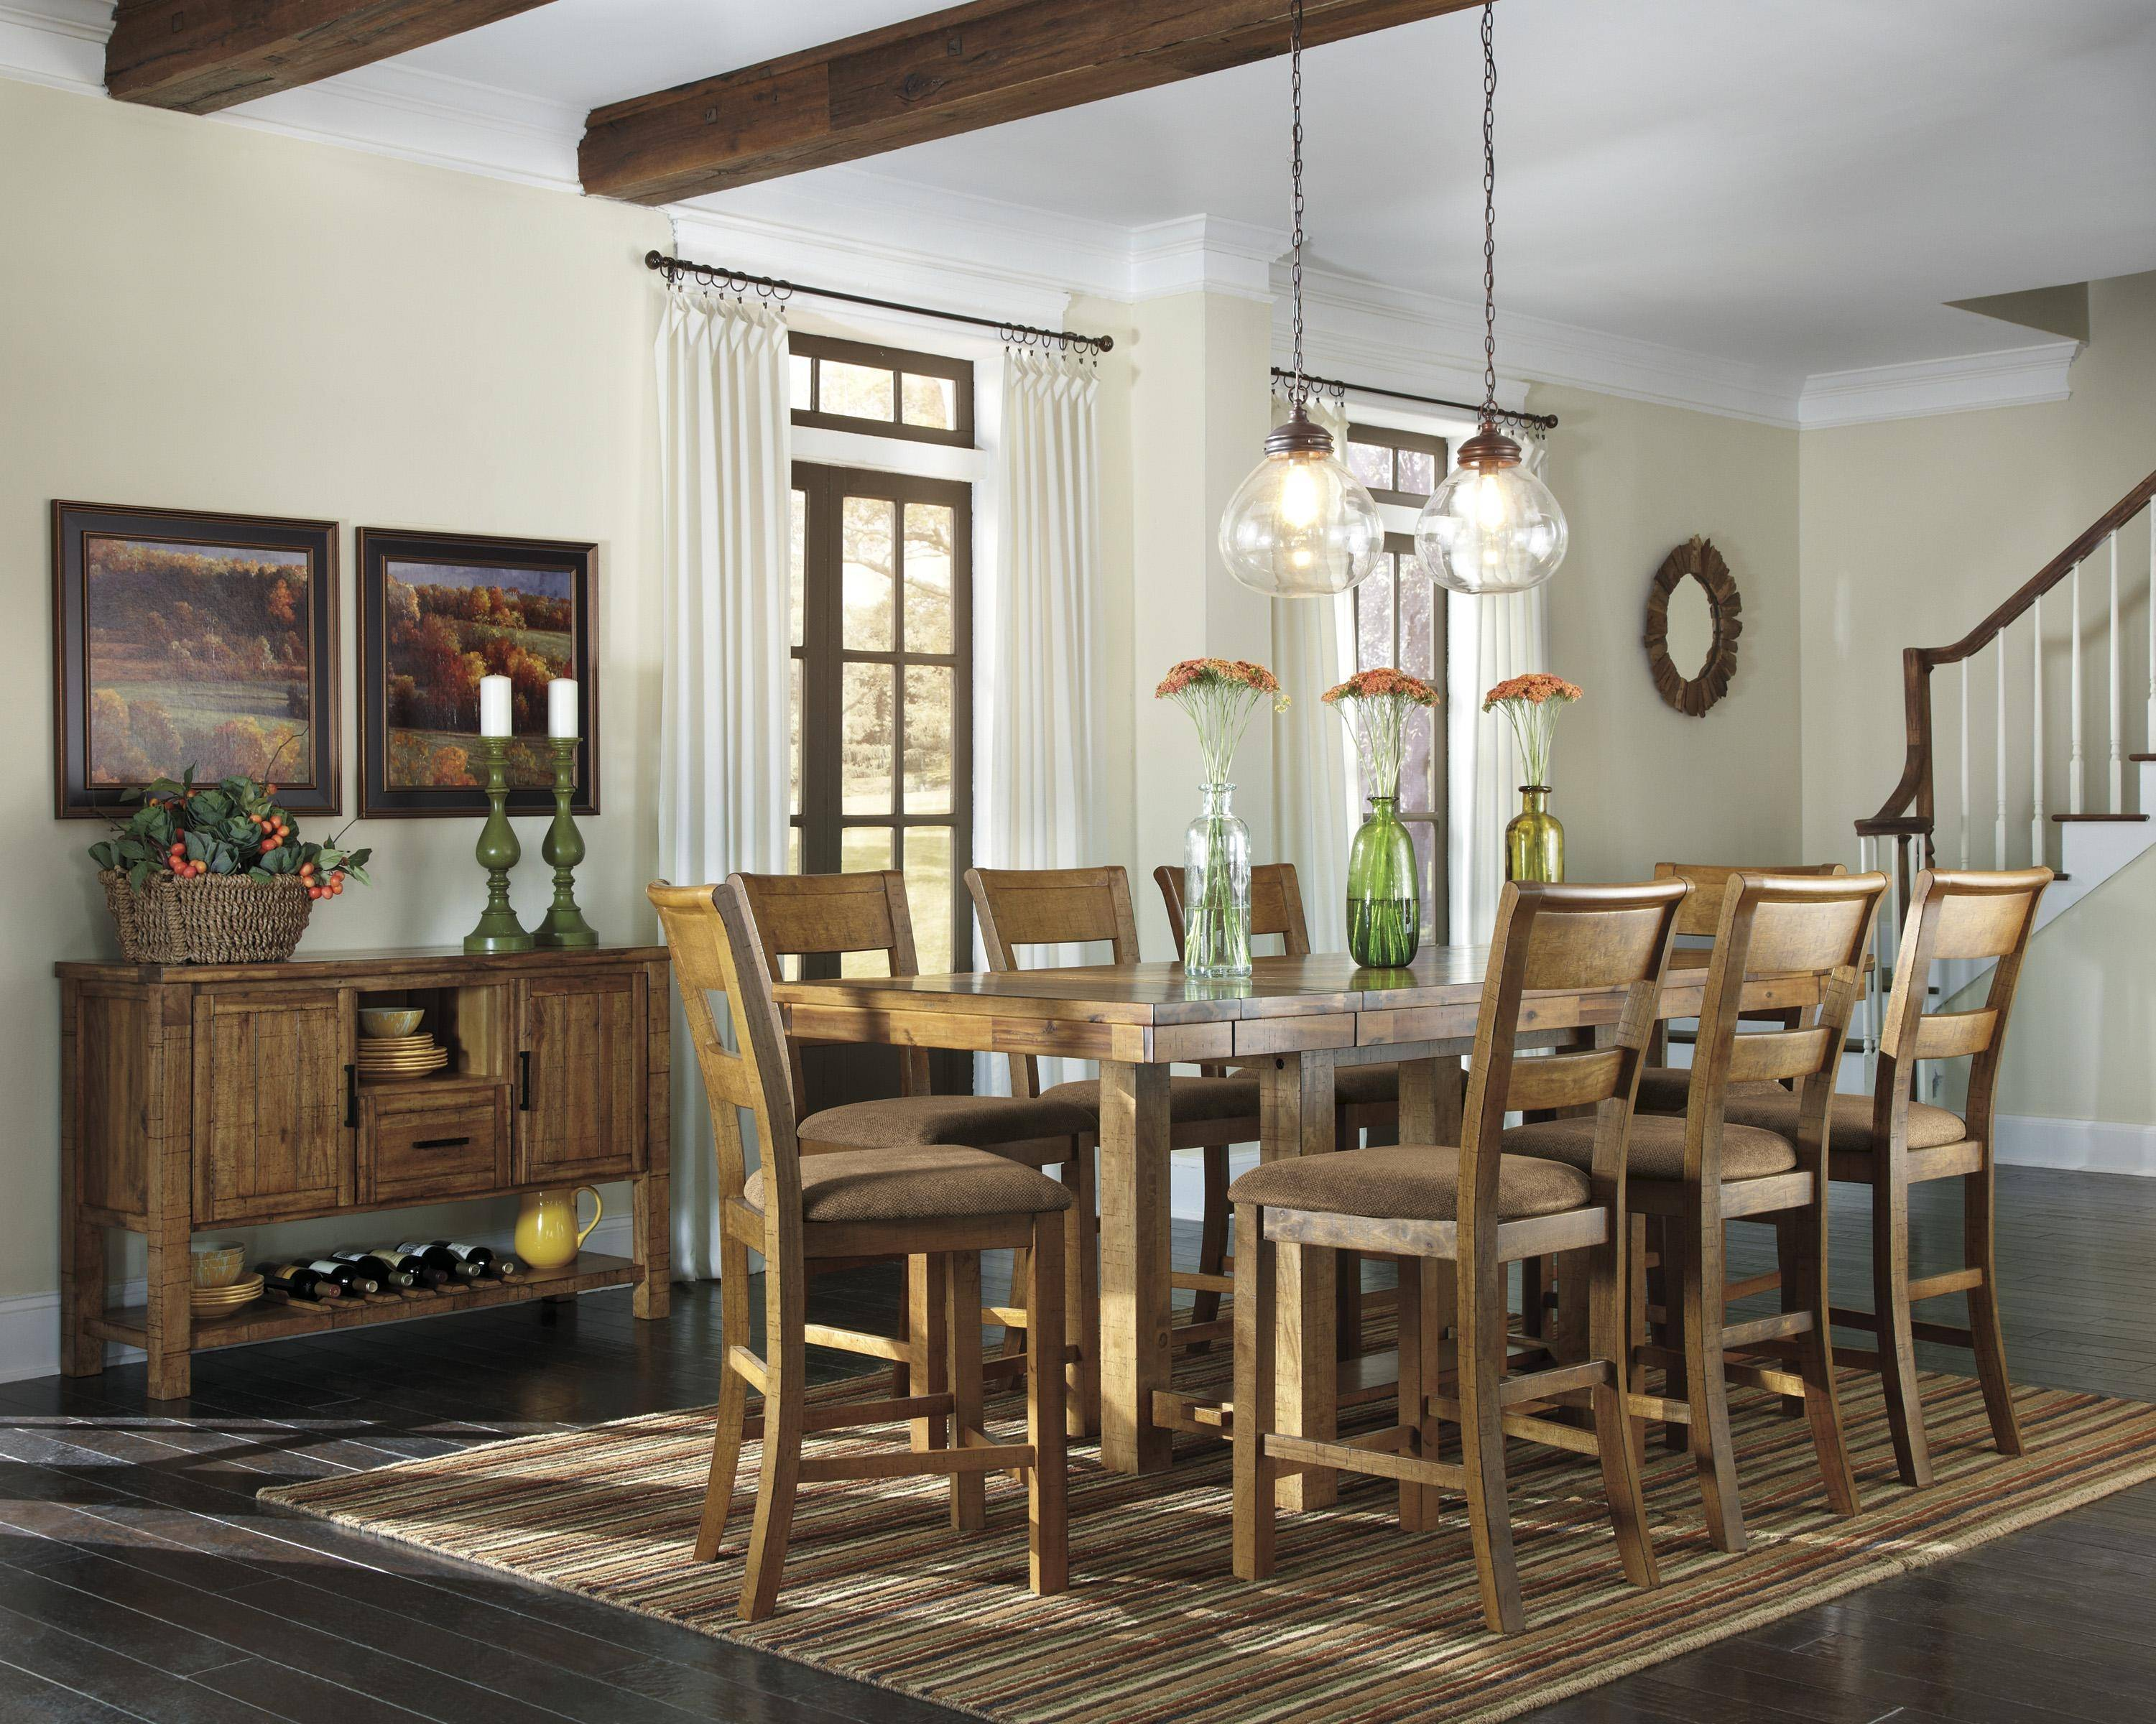 Find Many Great New Used Options And Get The Best Deals For Ashley Krinden D653 Dining Room Set 10pcs In Light Brown Casual Style At Online